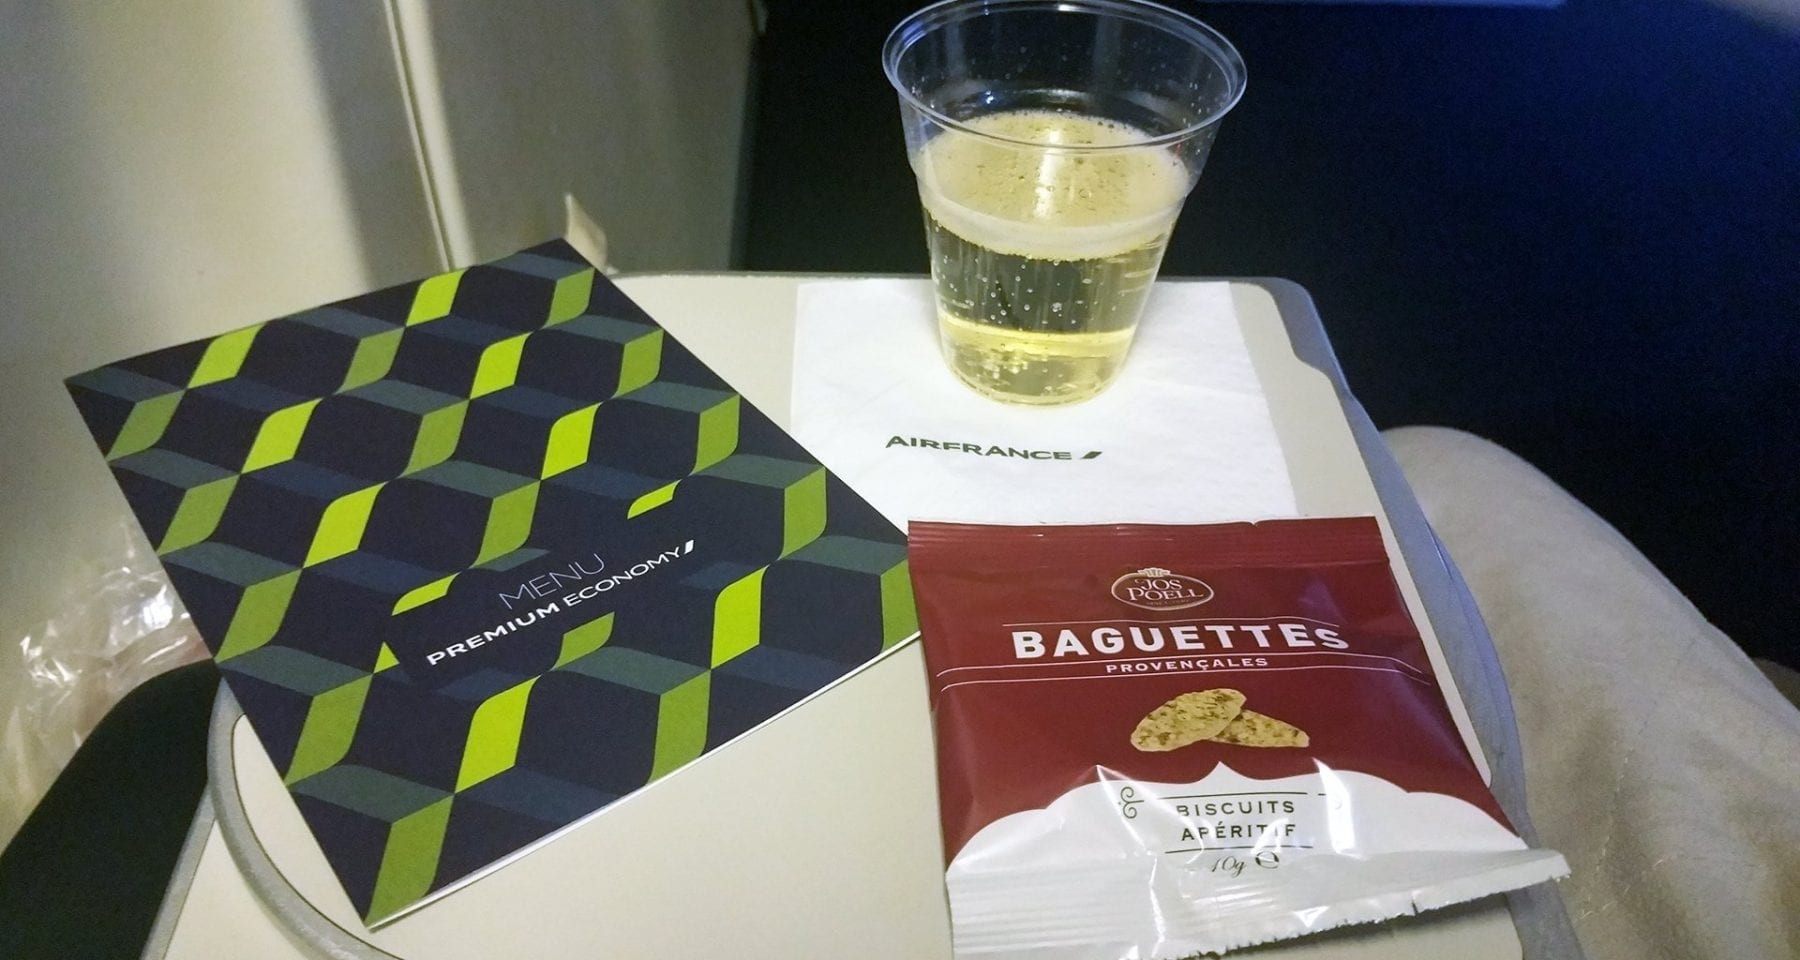 air france champagne and premium economy class menu